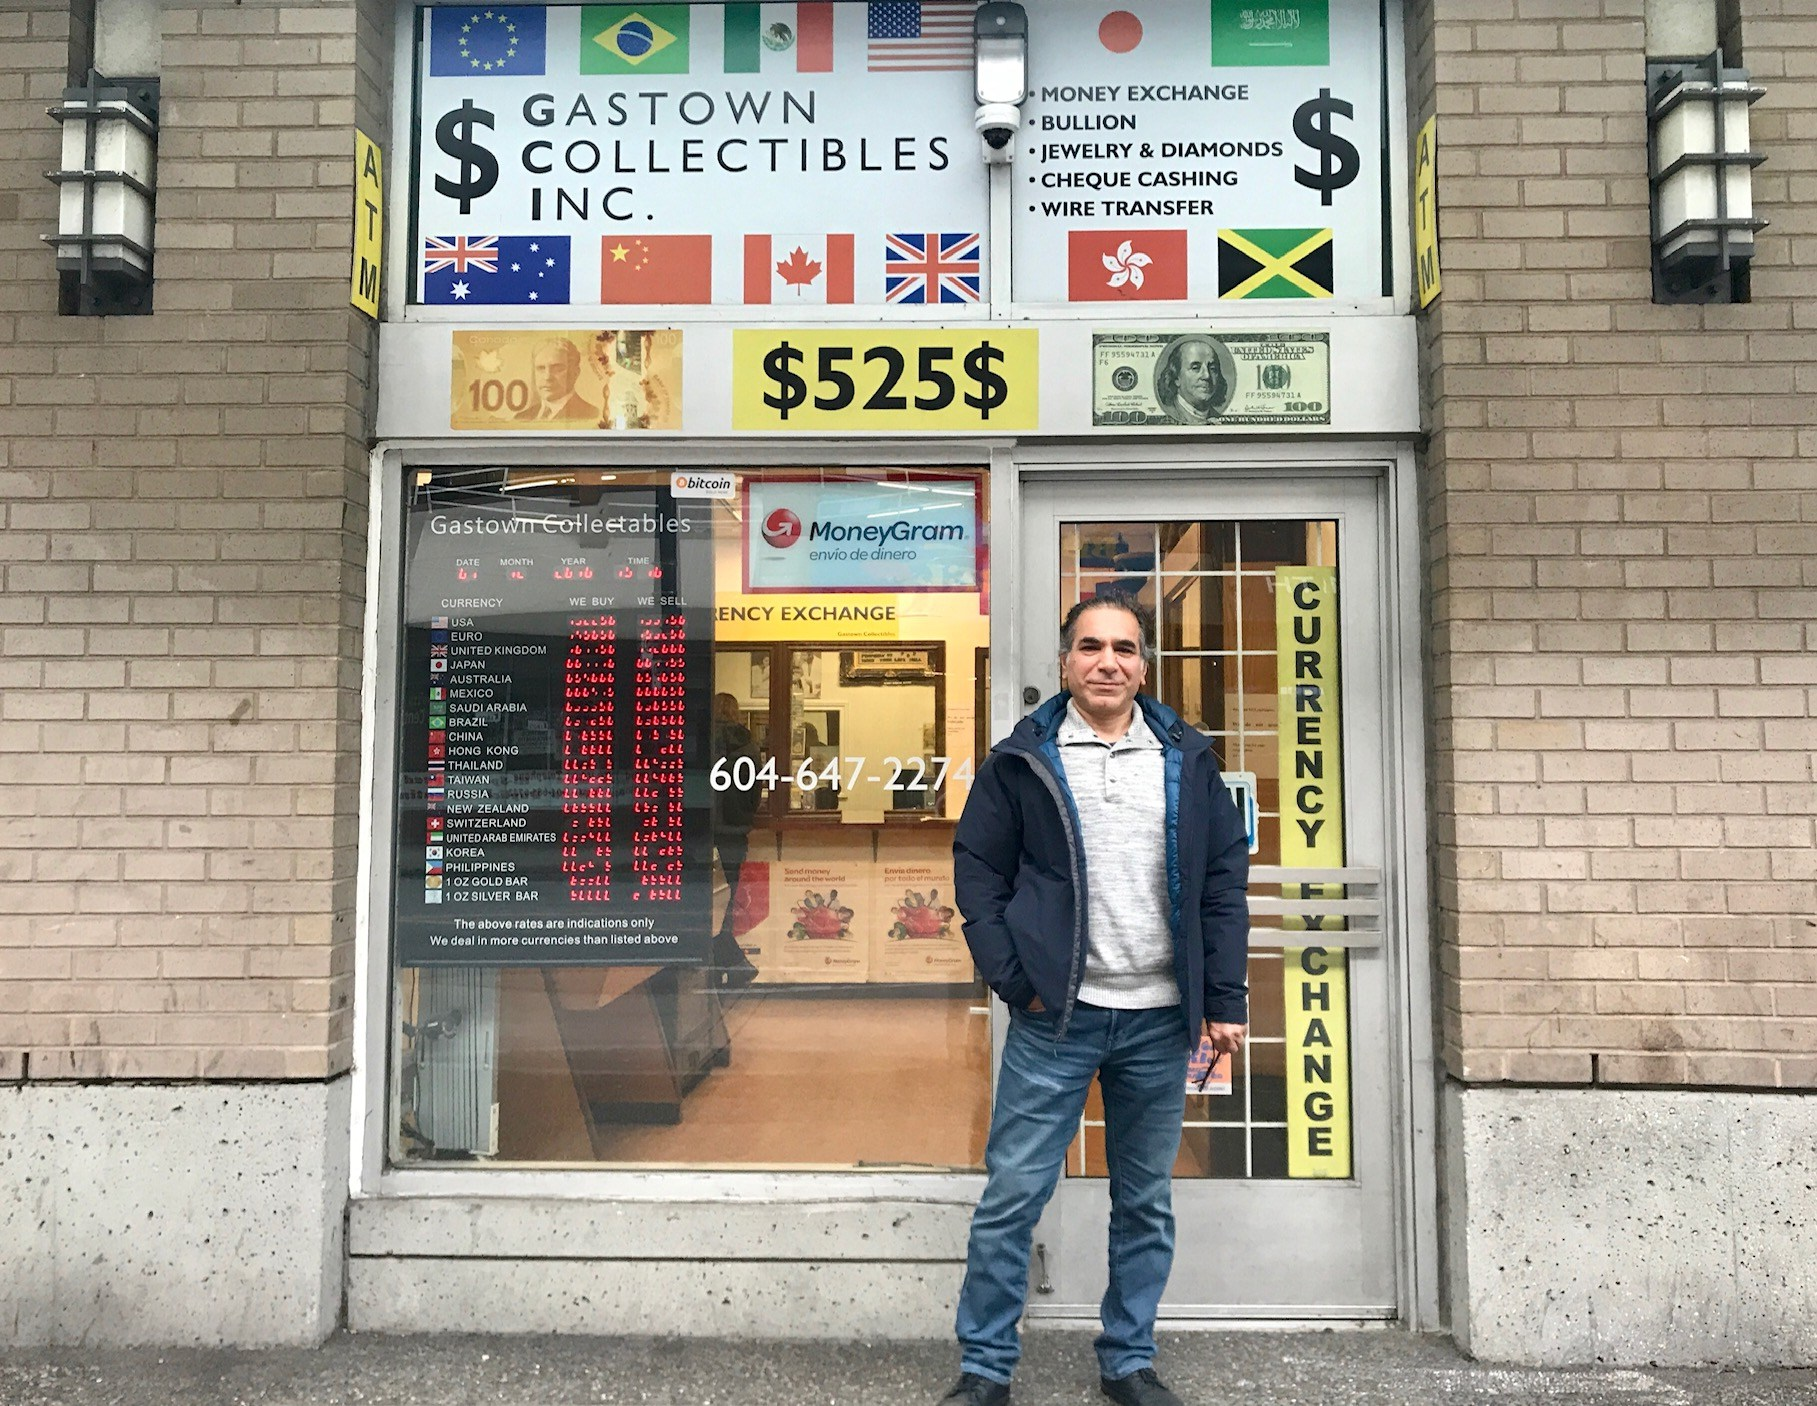 Vancouverite shocked by $52 refund two years after being accidentally overcharged